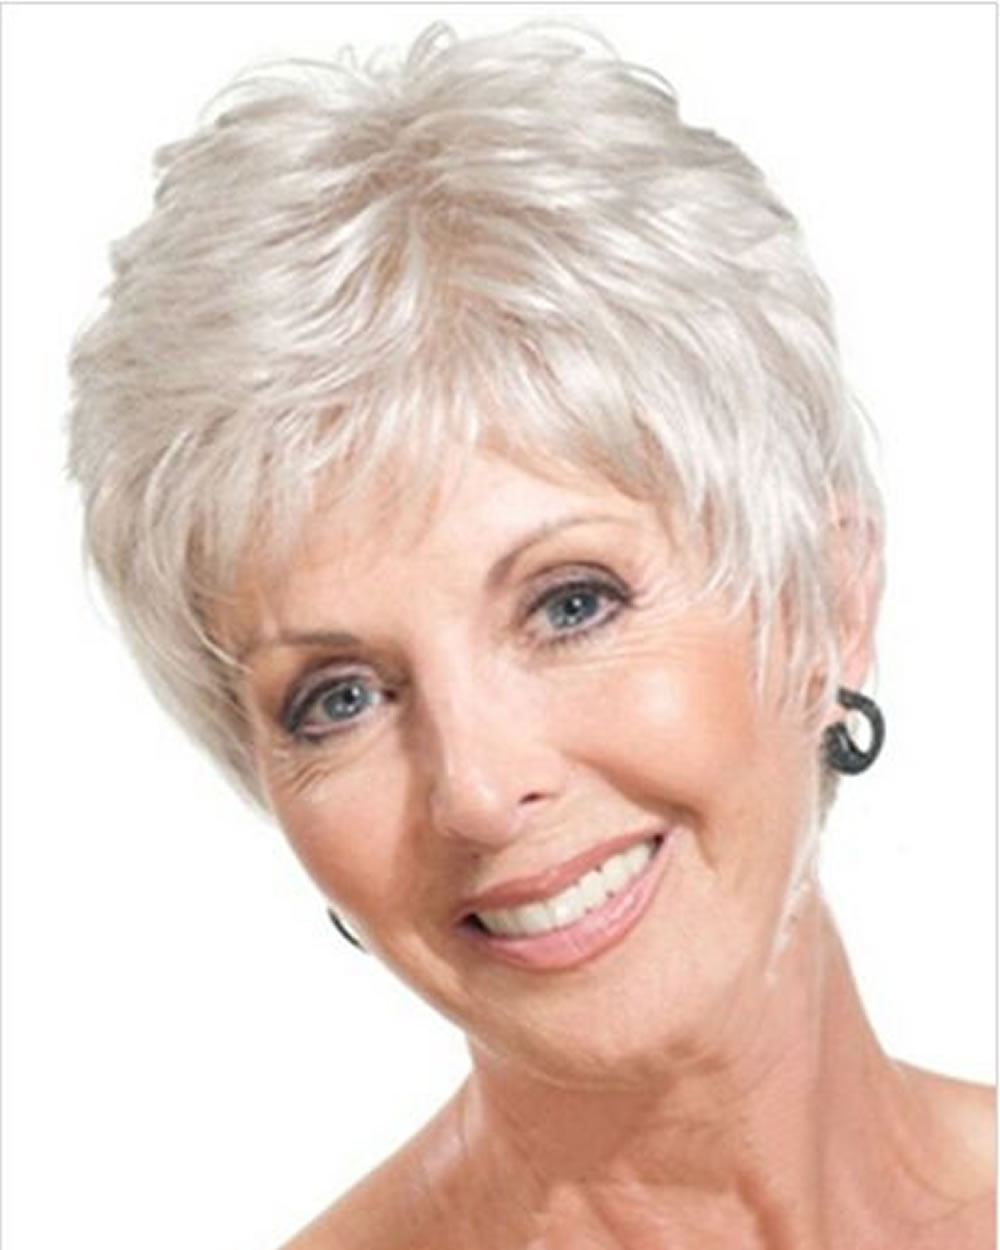 Hairstyles For Women Over 50 With Round Faces Ideas Photo Gallery